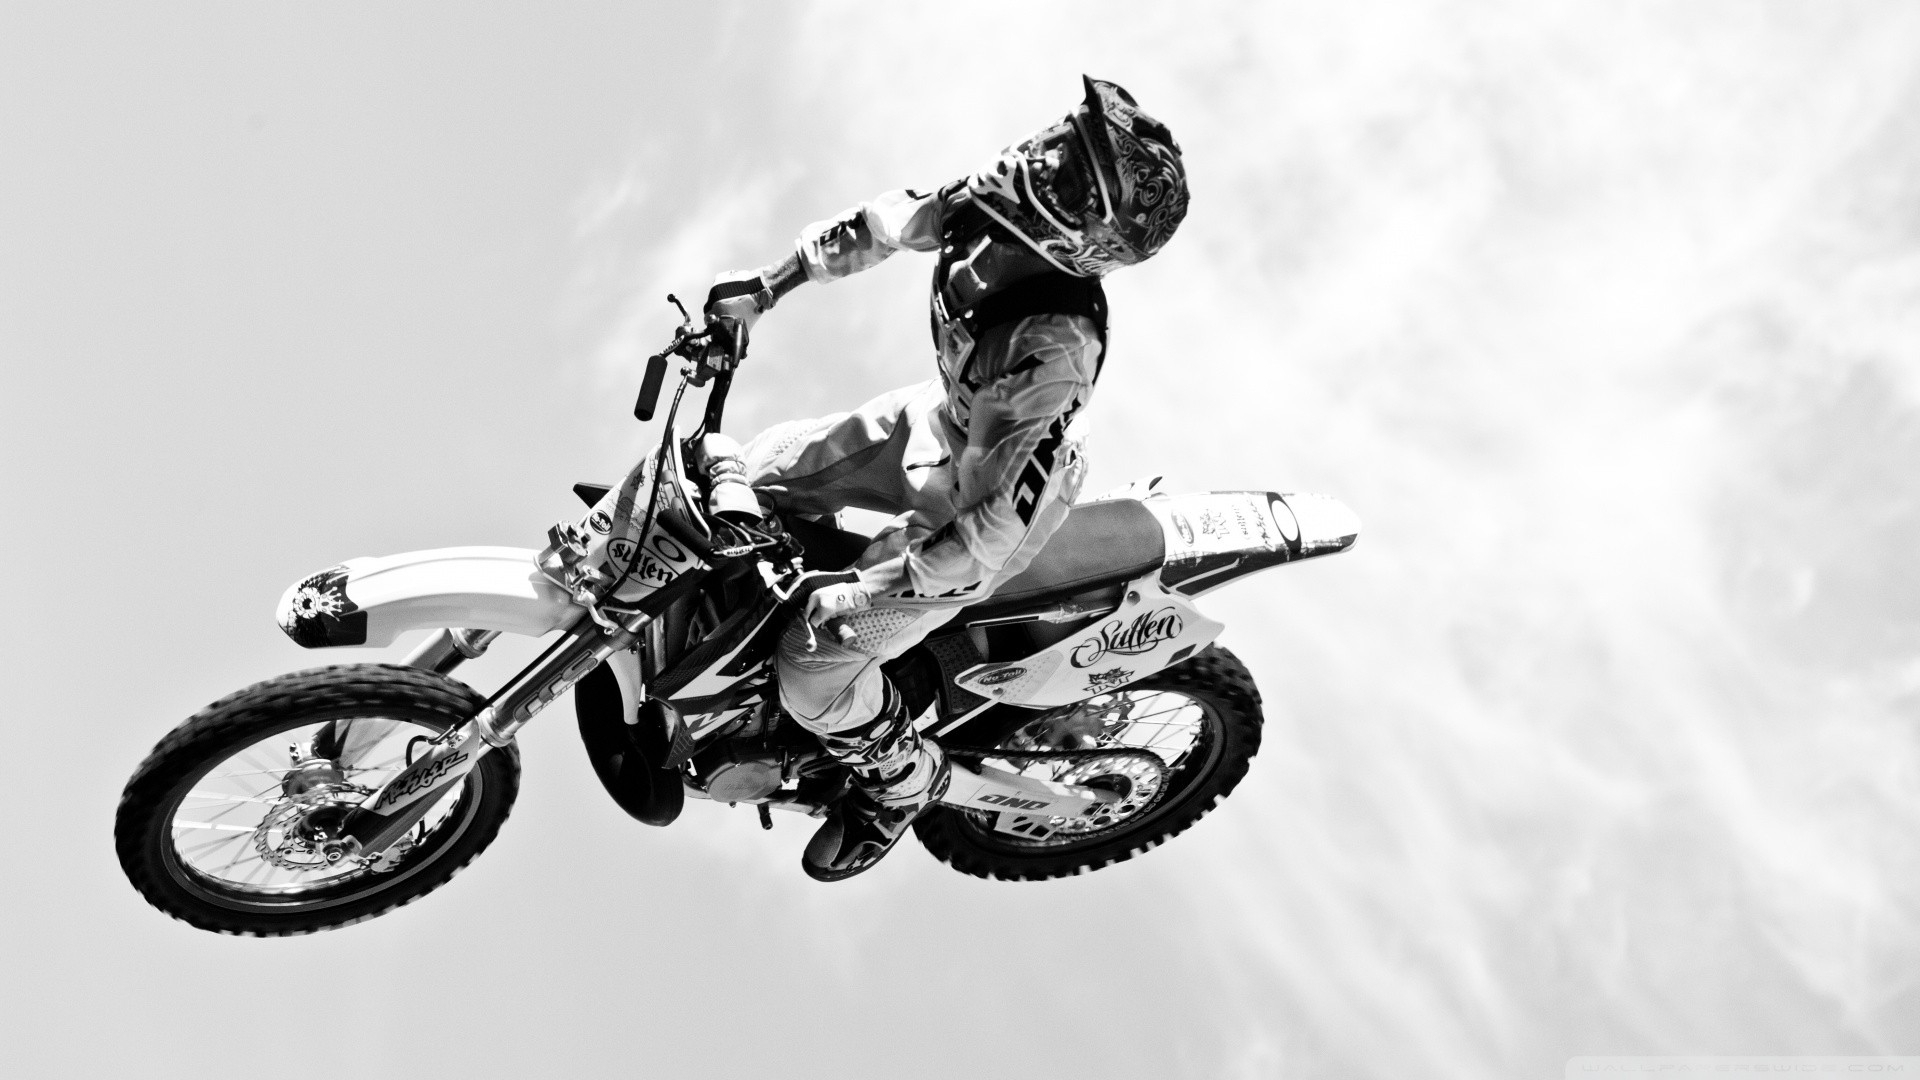 dirtbike moto vehicles motorcycle motorbike bike flight fly black white wheels people uniform sky clouds extreme sports racing cross